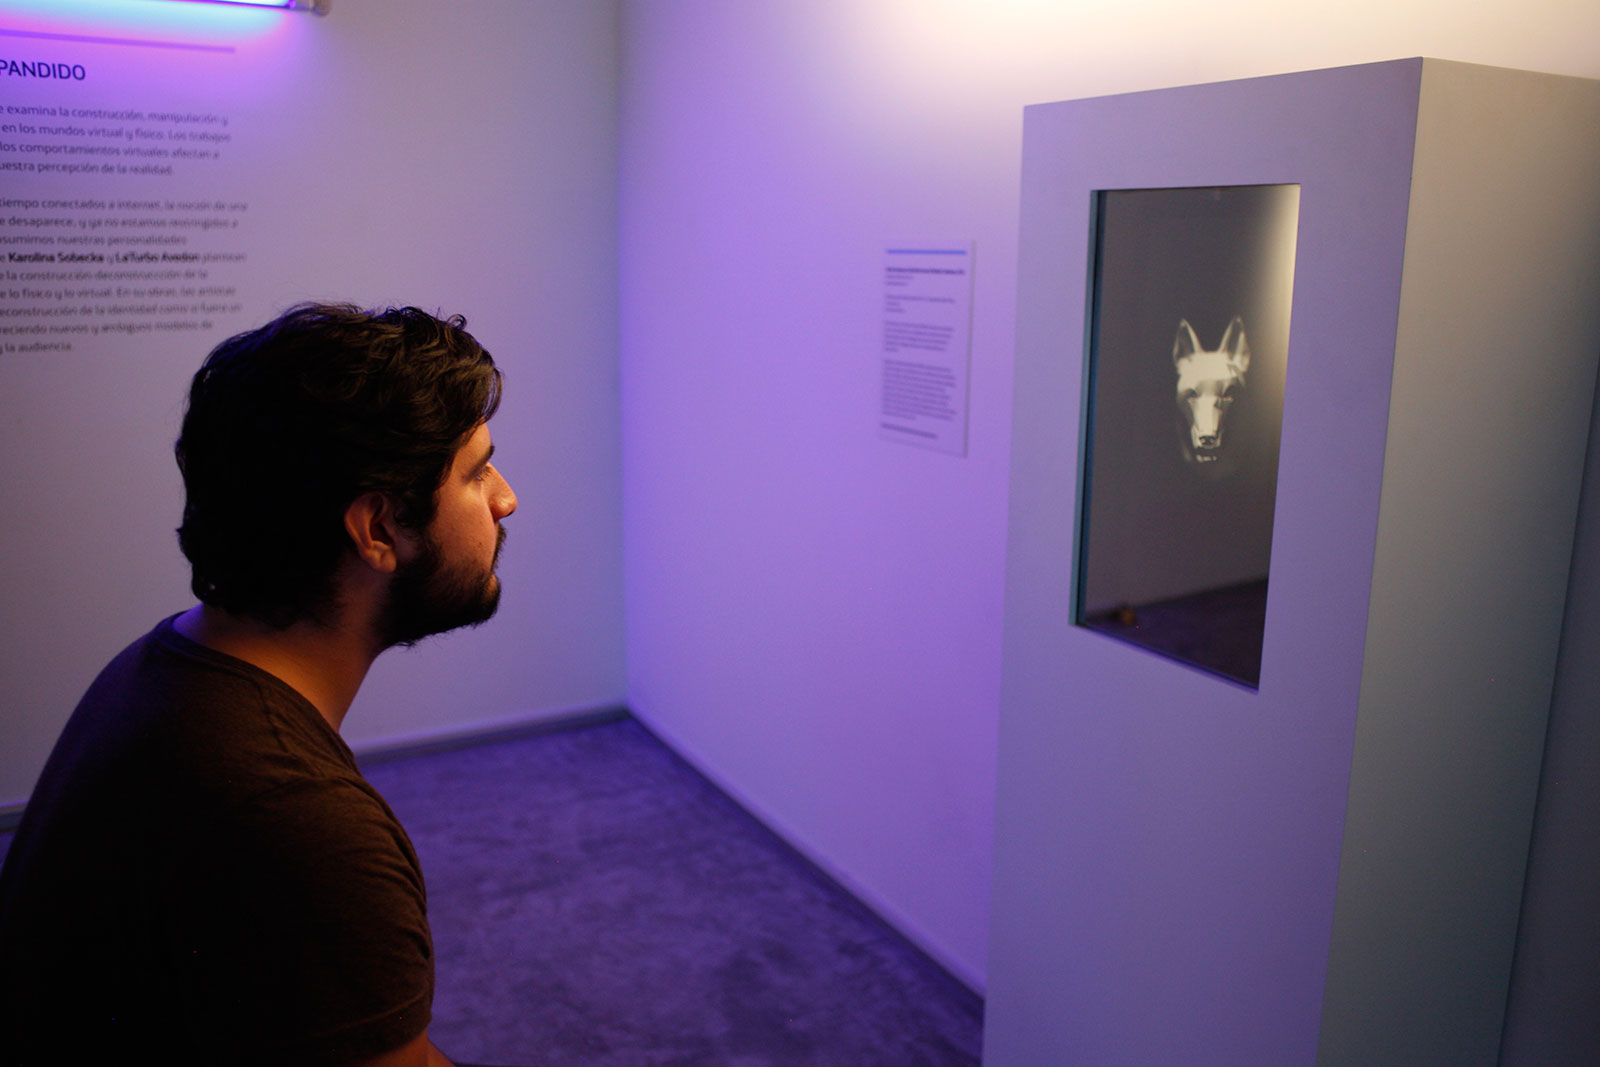 man looking at interactive video of animated goat